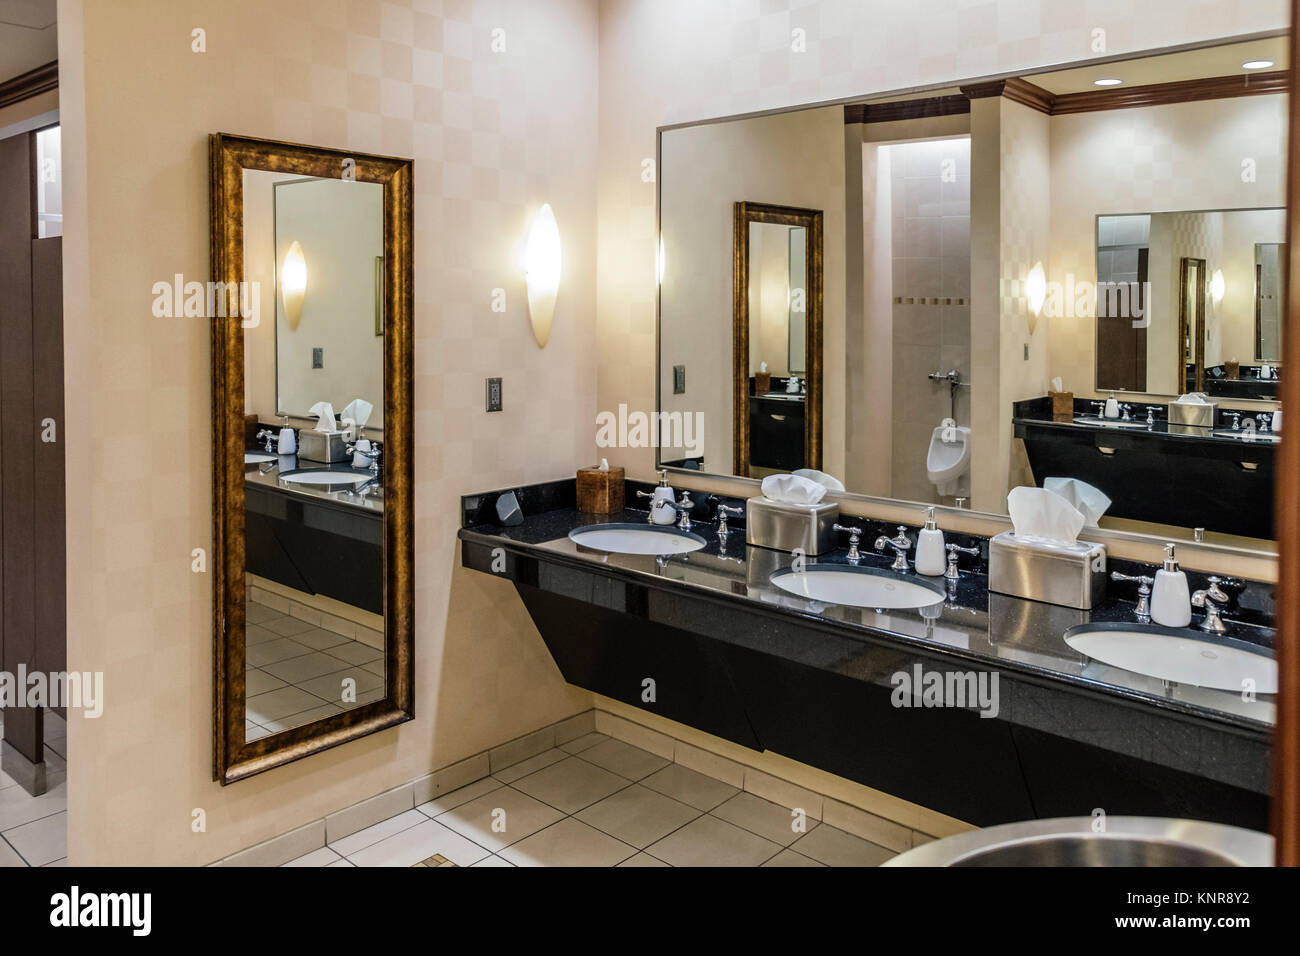 Interior of public men's bathroom or toilet in a luxury hotel, the Renaissance Hotel and Spa in Montgomery, - Stock Image